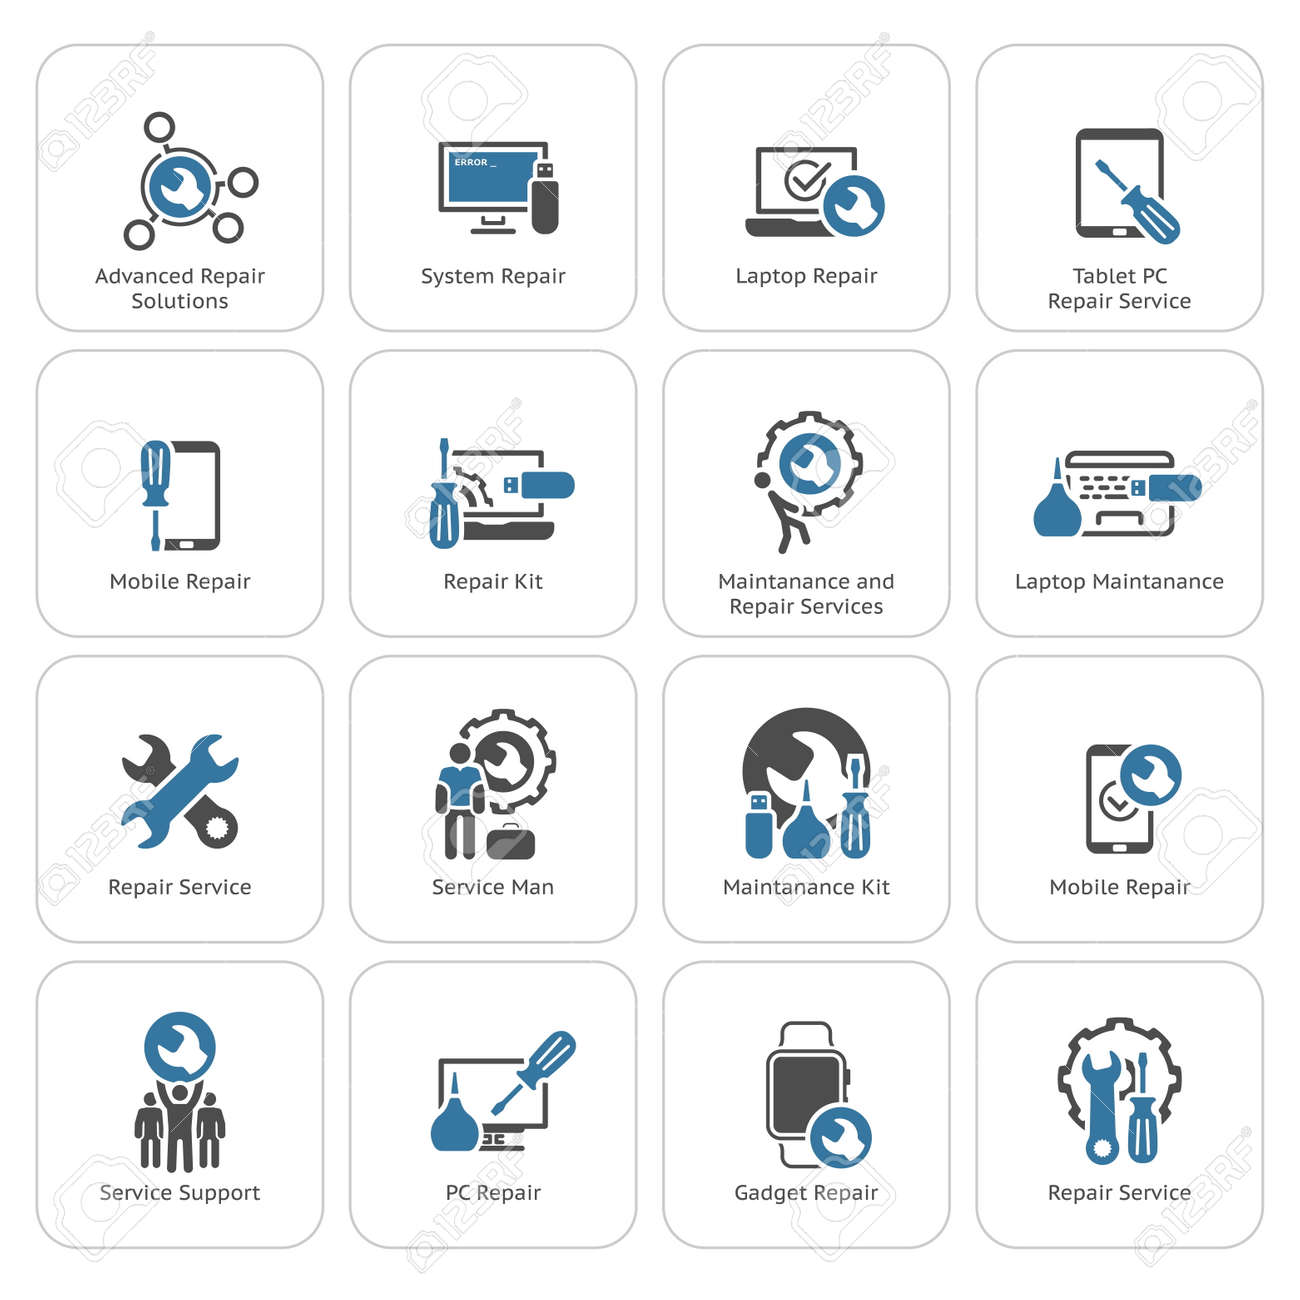 Repair Service and Maintenance Icons Set. Isolated Illustration. - 54396880